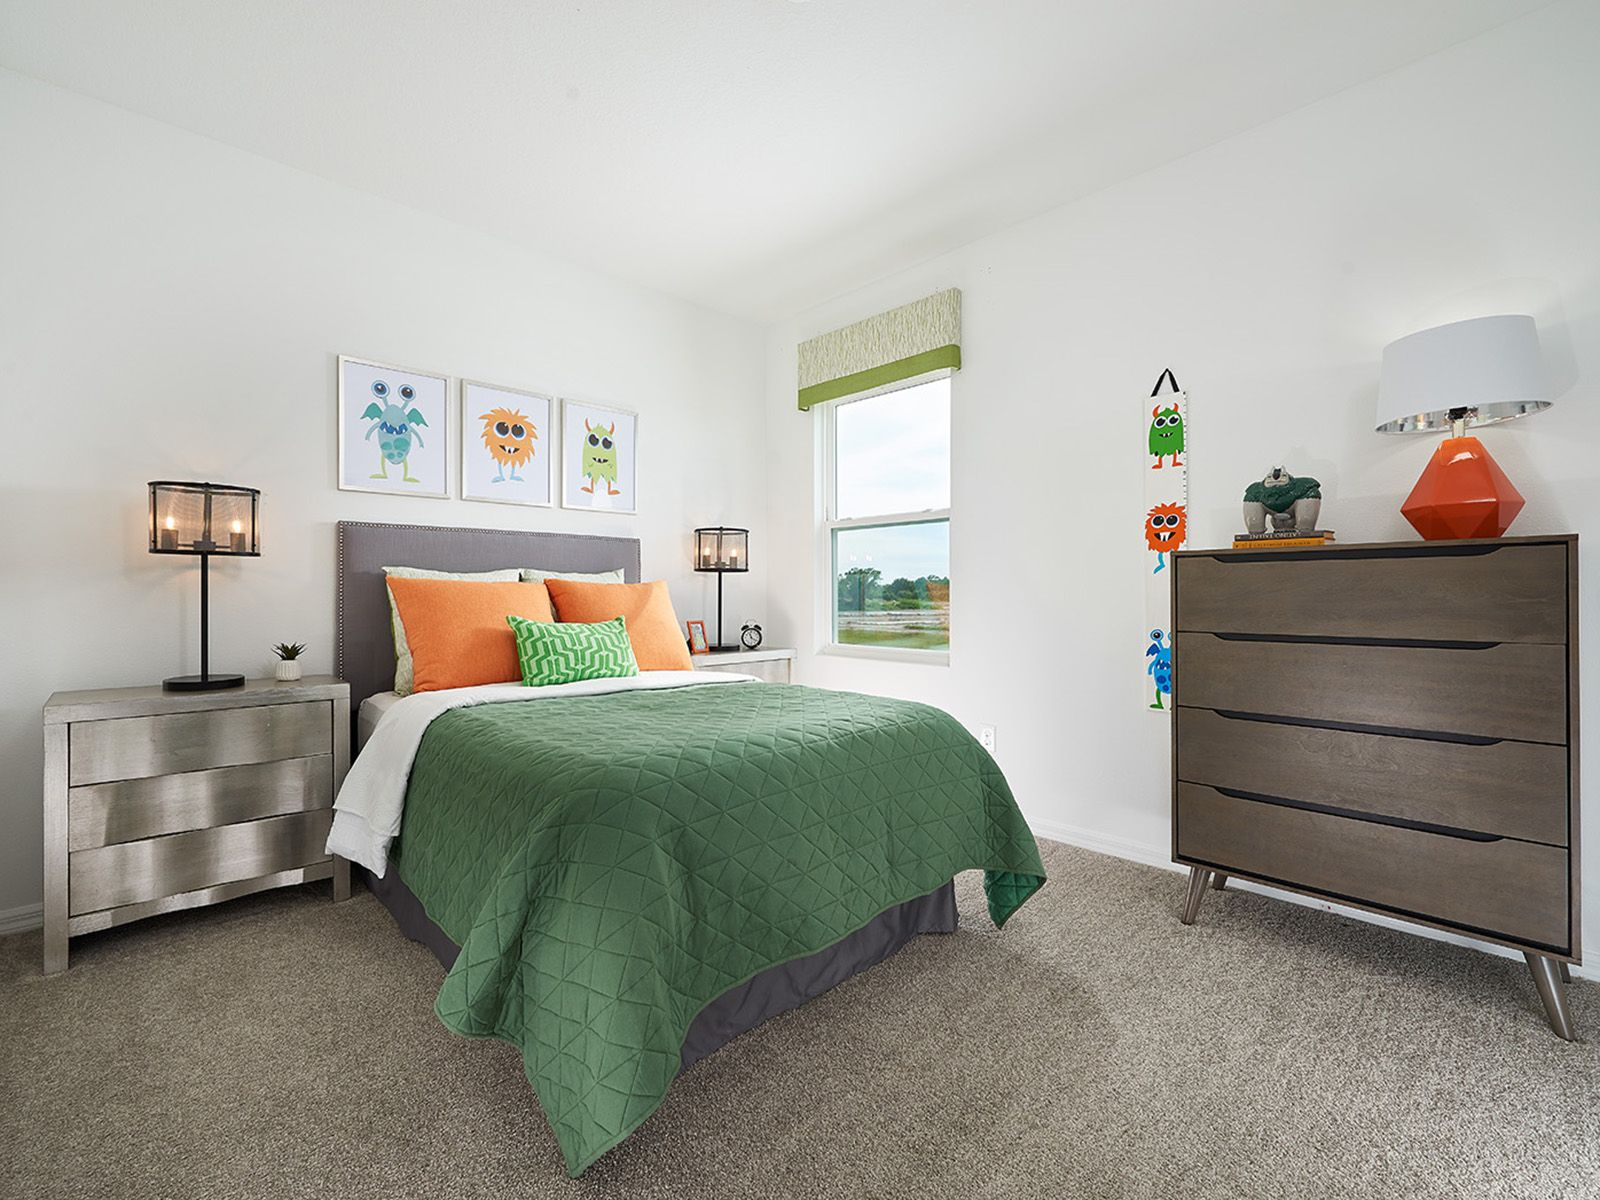 Bedroom featured in the Juniper- Meritage Homes By Crown Community Development